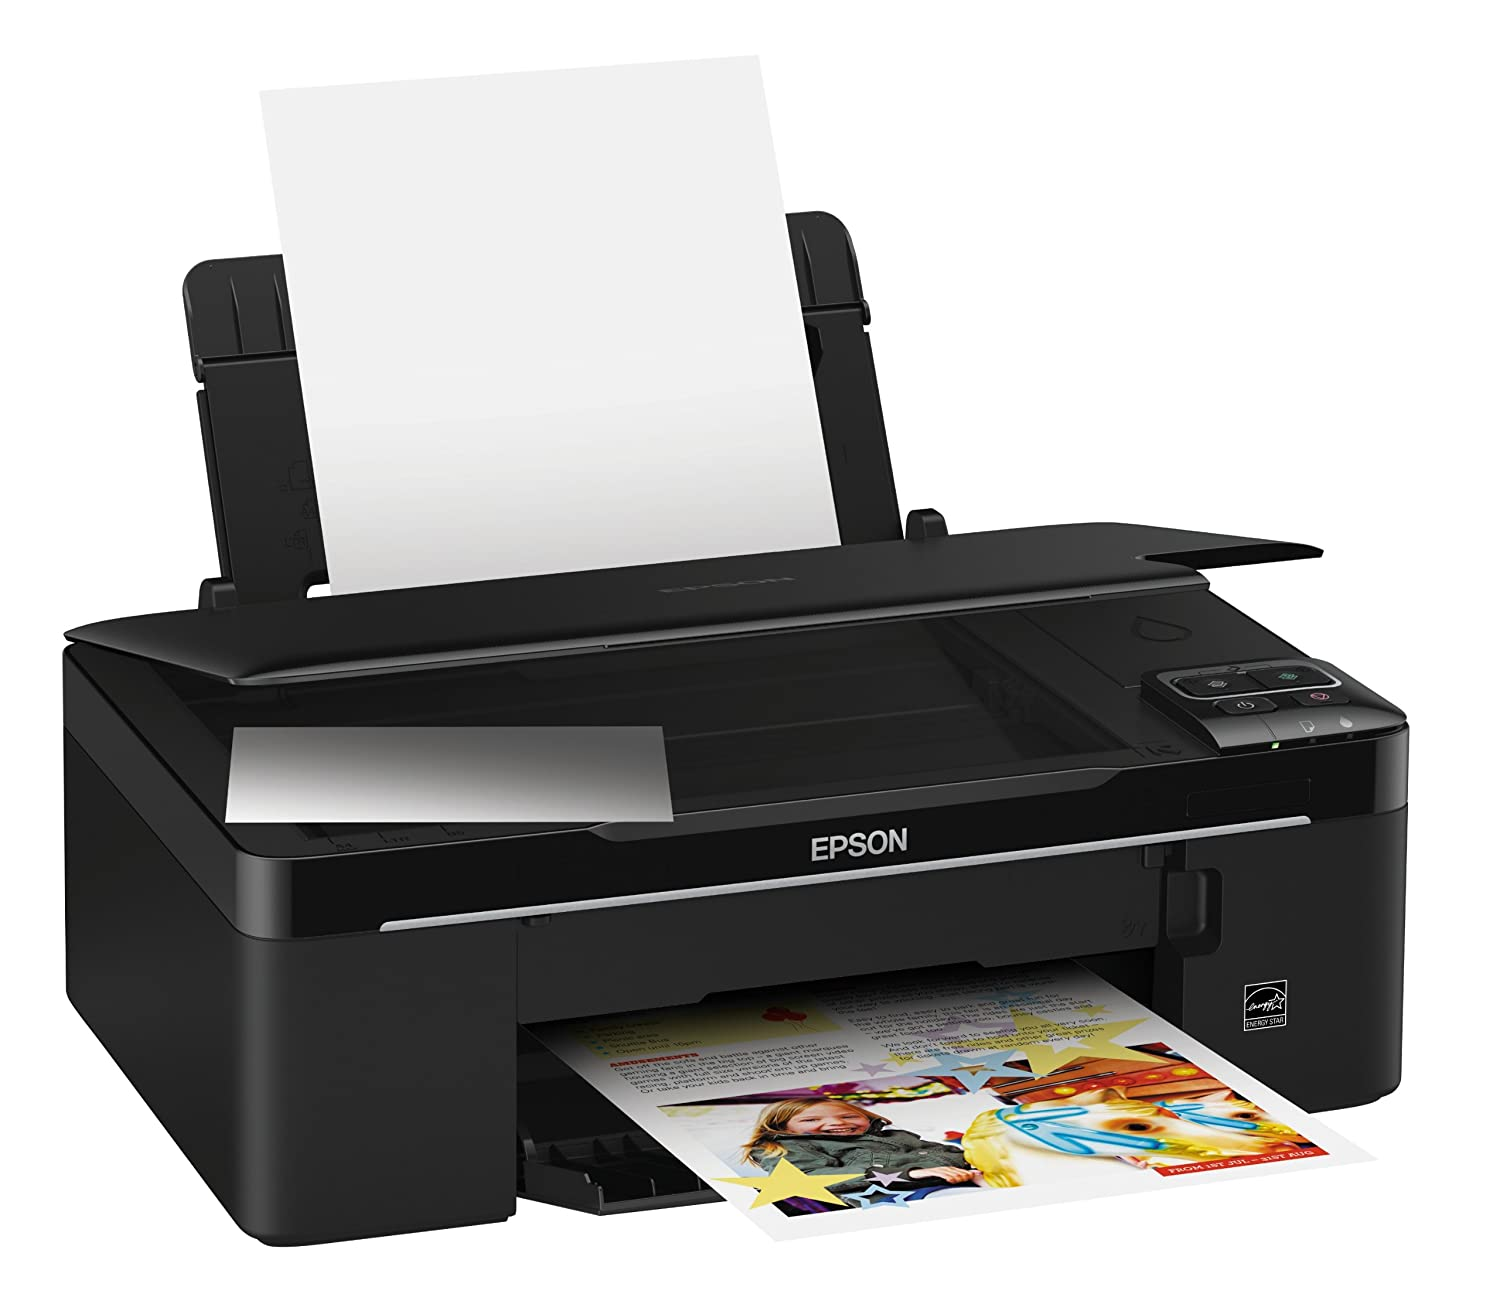 epson stylus sx130 compact all in one printer print copy and scan rh amazon co uk epson stylus sx115 specs epson stylus sx115 service manual